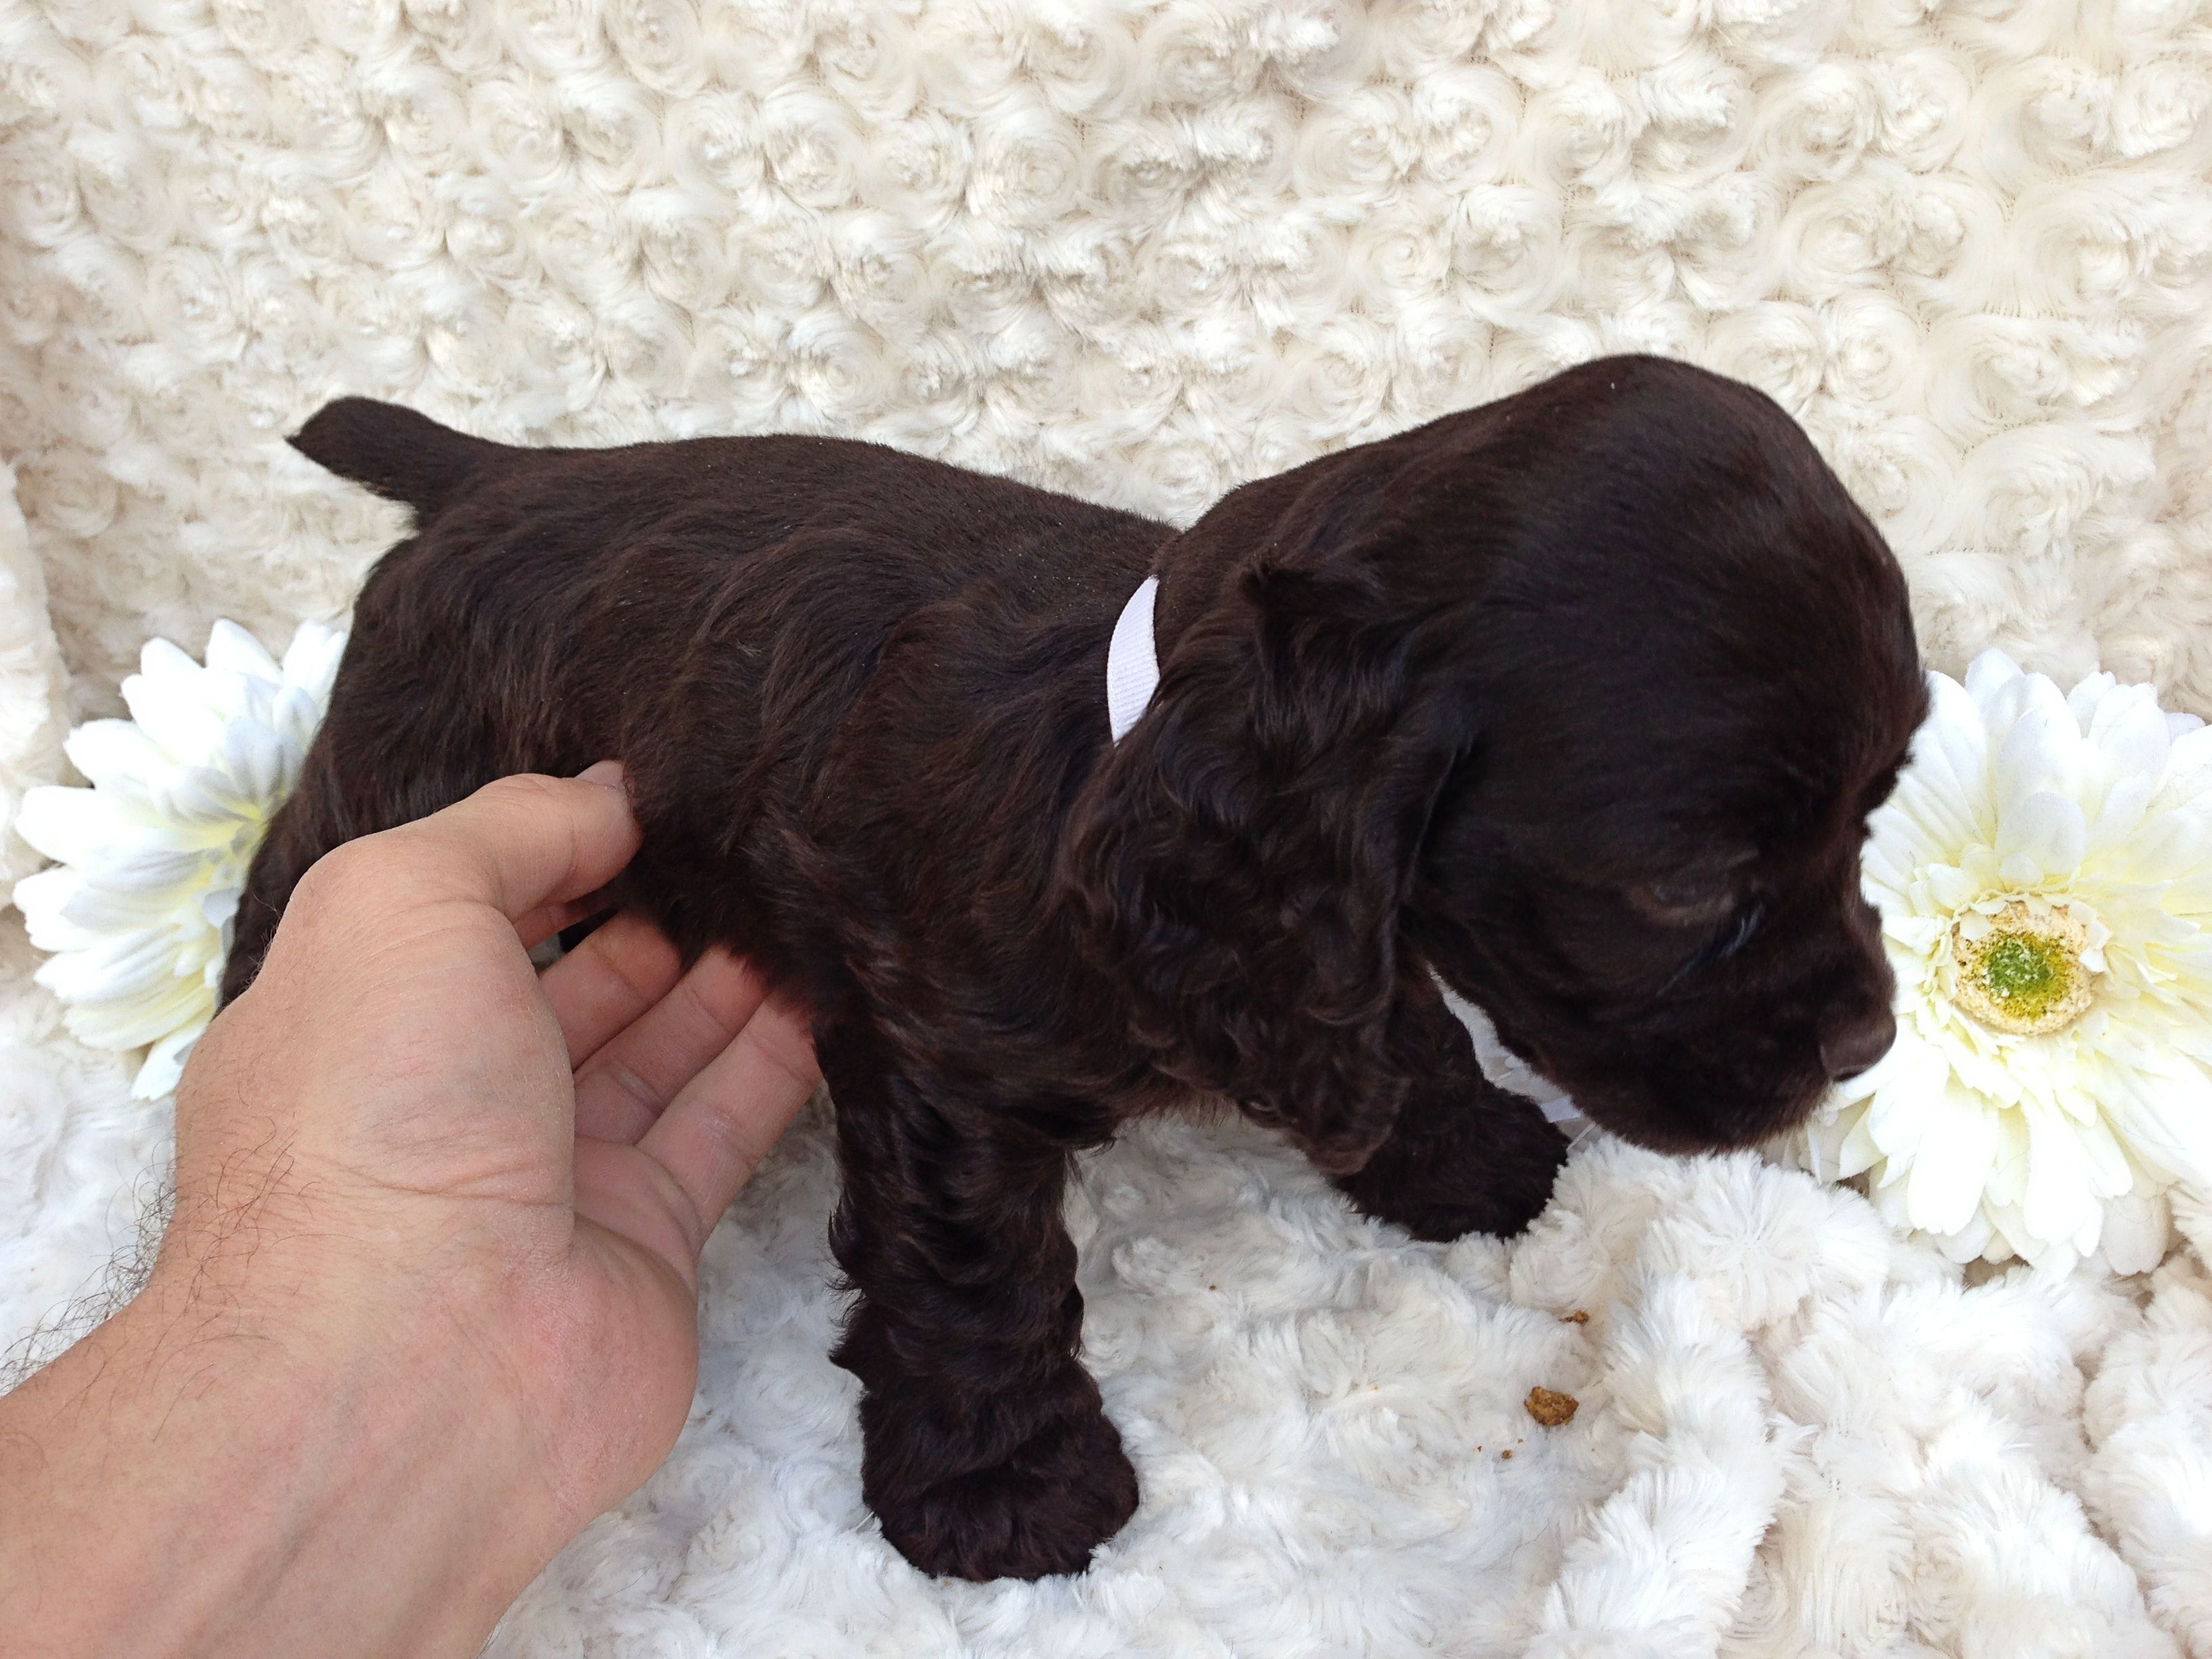 The Quickest Way To A Chocolate Cocker Spaniel S Heart Is Not Food It S Belly Scratches Daisy S White Chocolate Cocker Spaniel Puppies Spaniel Puppies